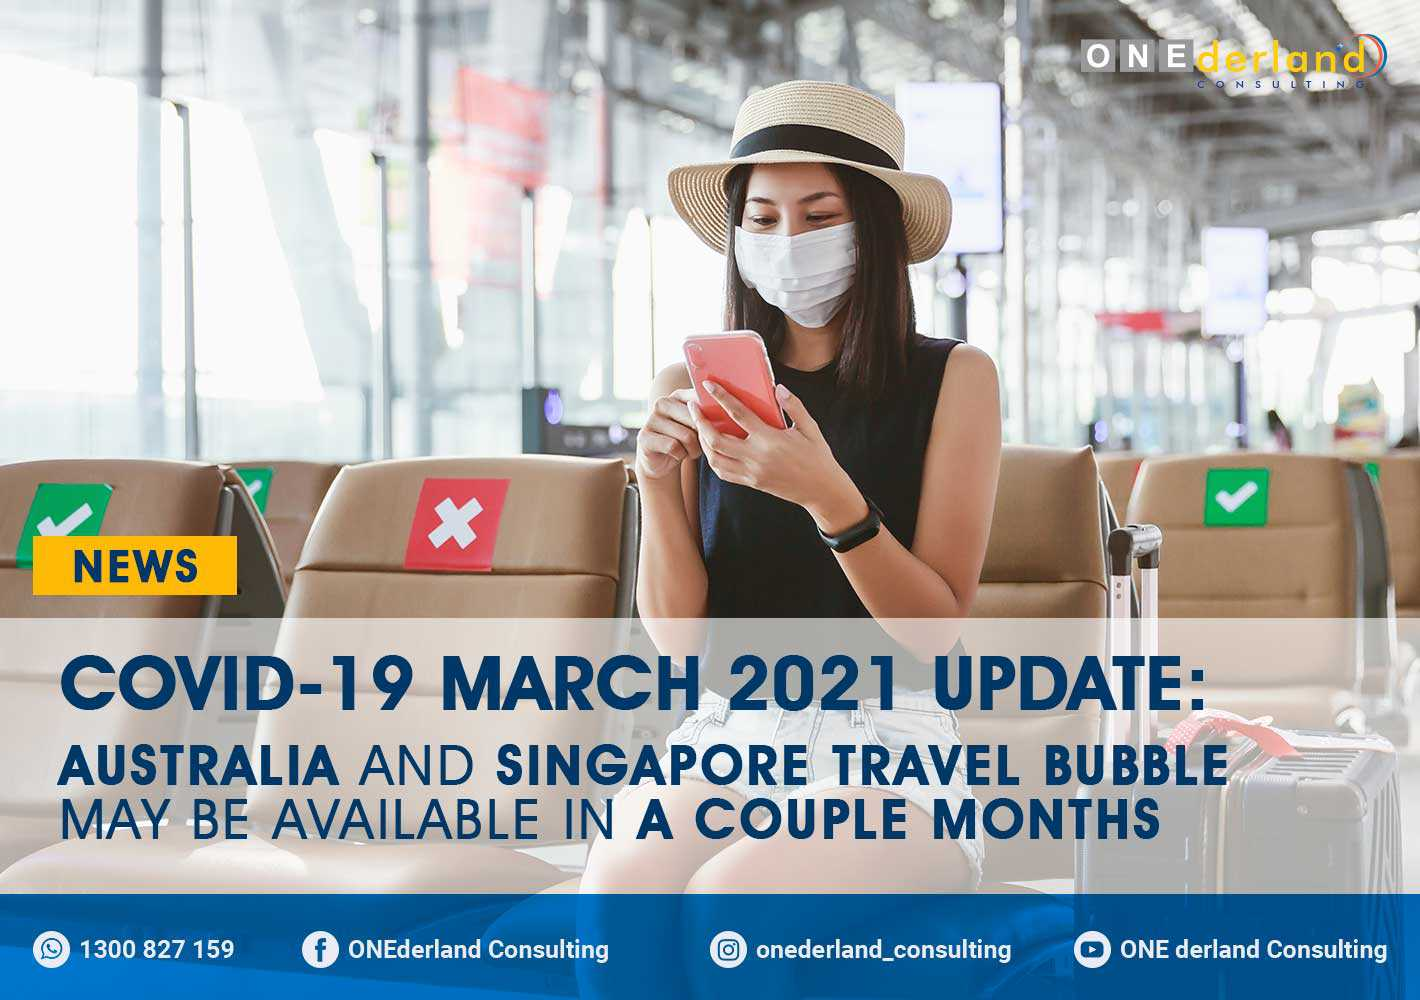 Australia and Singapore Travel Bubble May be Available in a Couple of Months